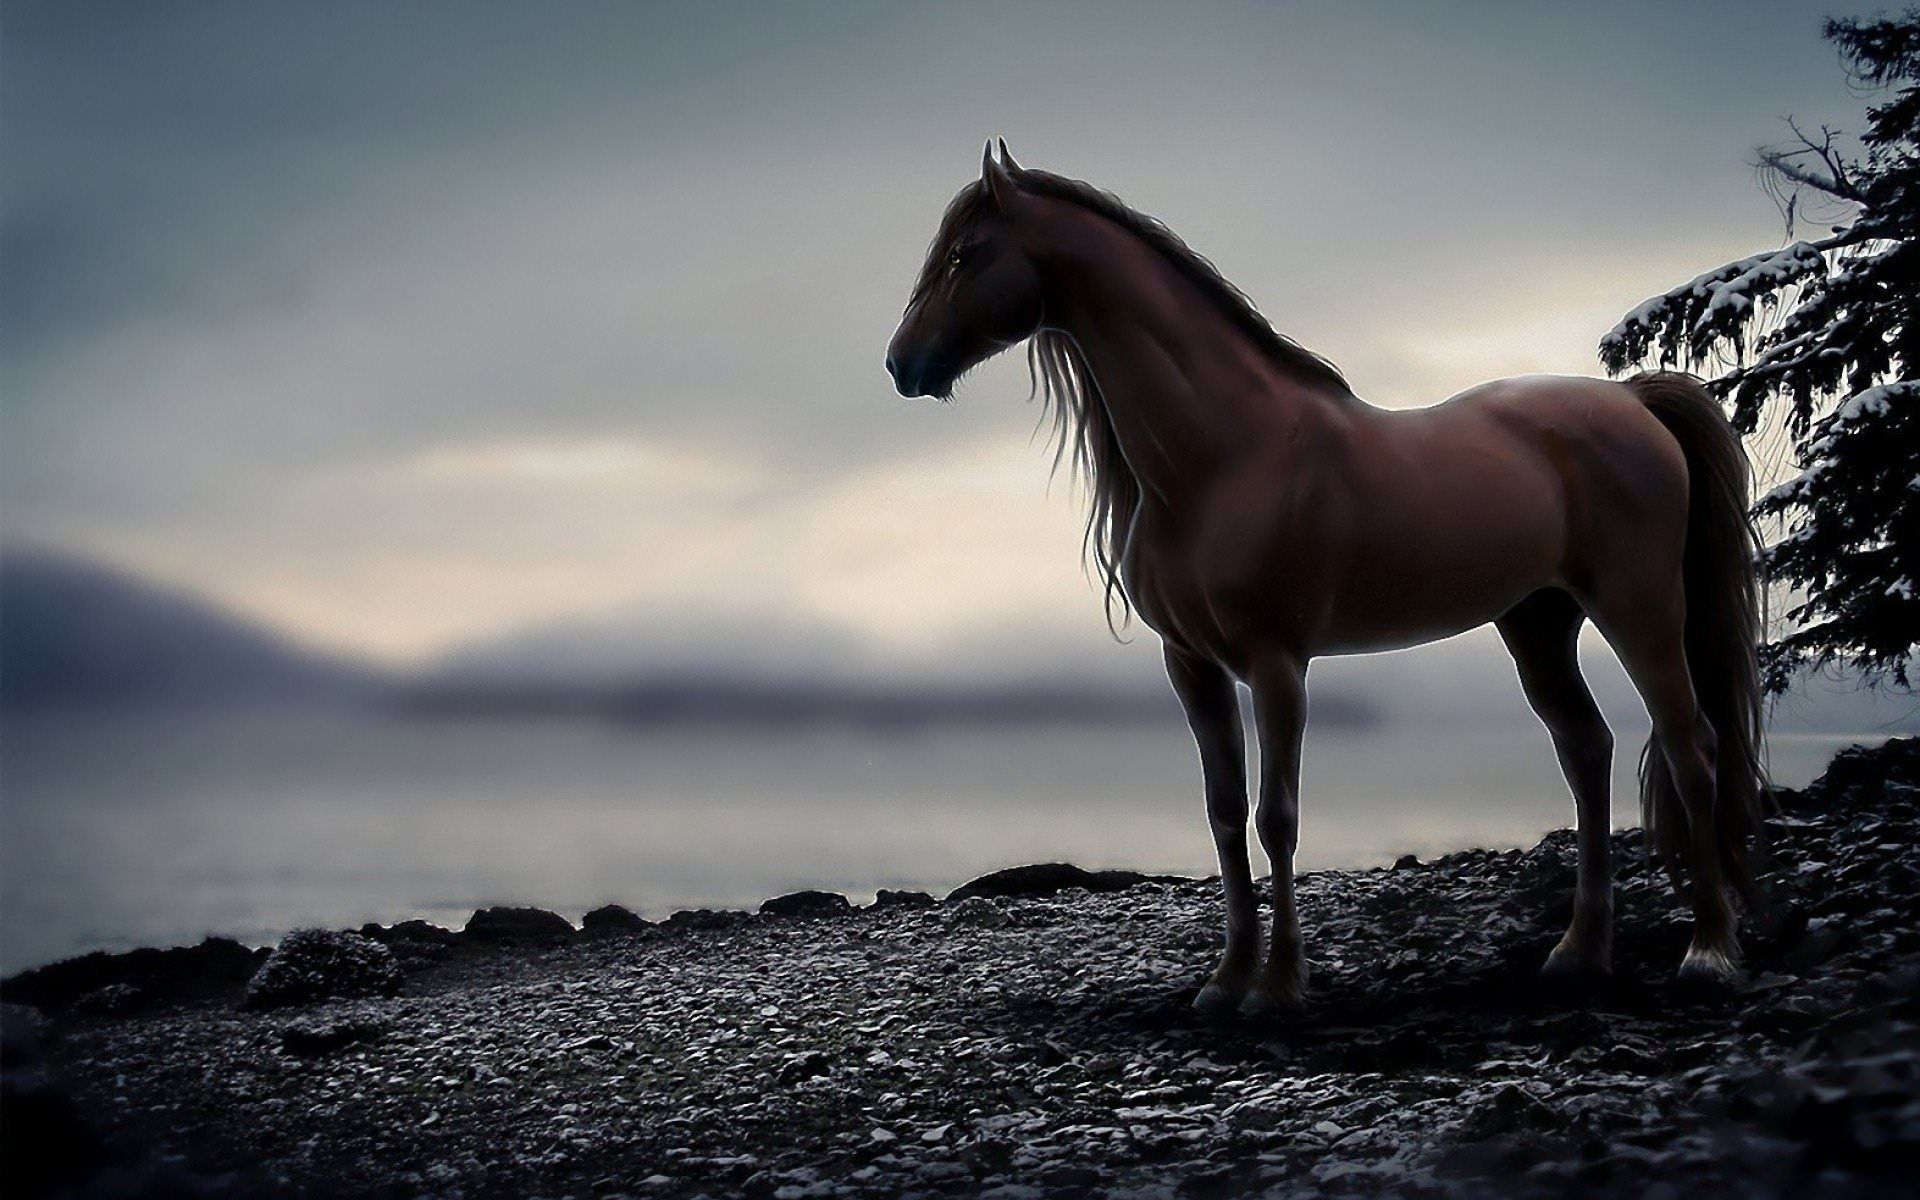 black horse hd wallpapers cool desktop background images(19201080) | Beautiful Wallpaper ...